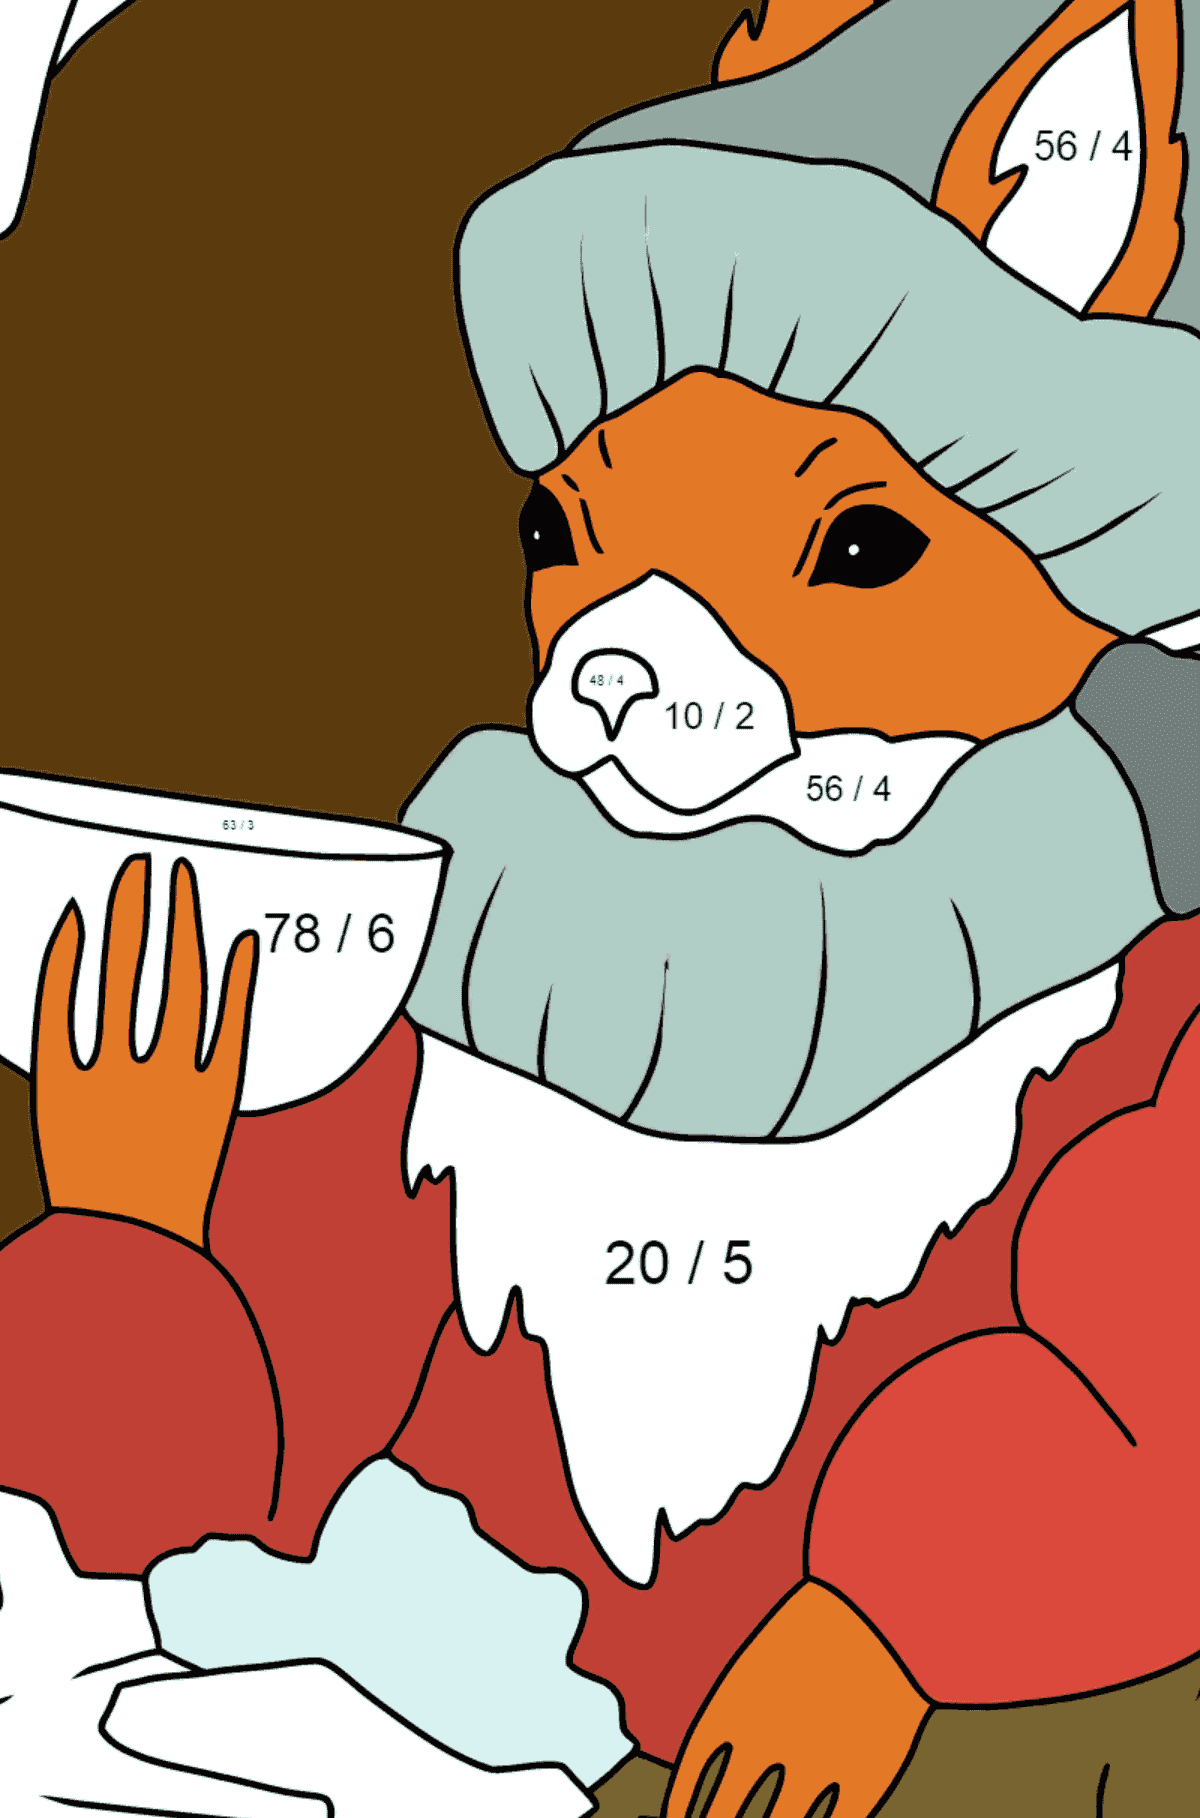 Winter Coloring Page - A Squirrel is Drinking Tea for Children  - Color by Number Division